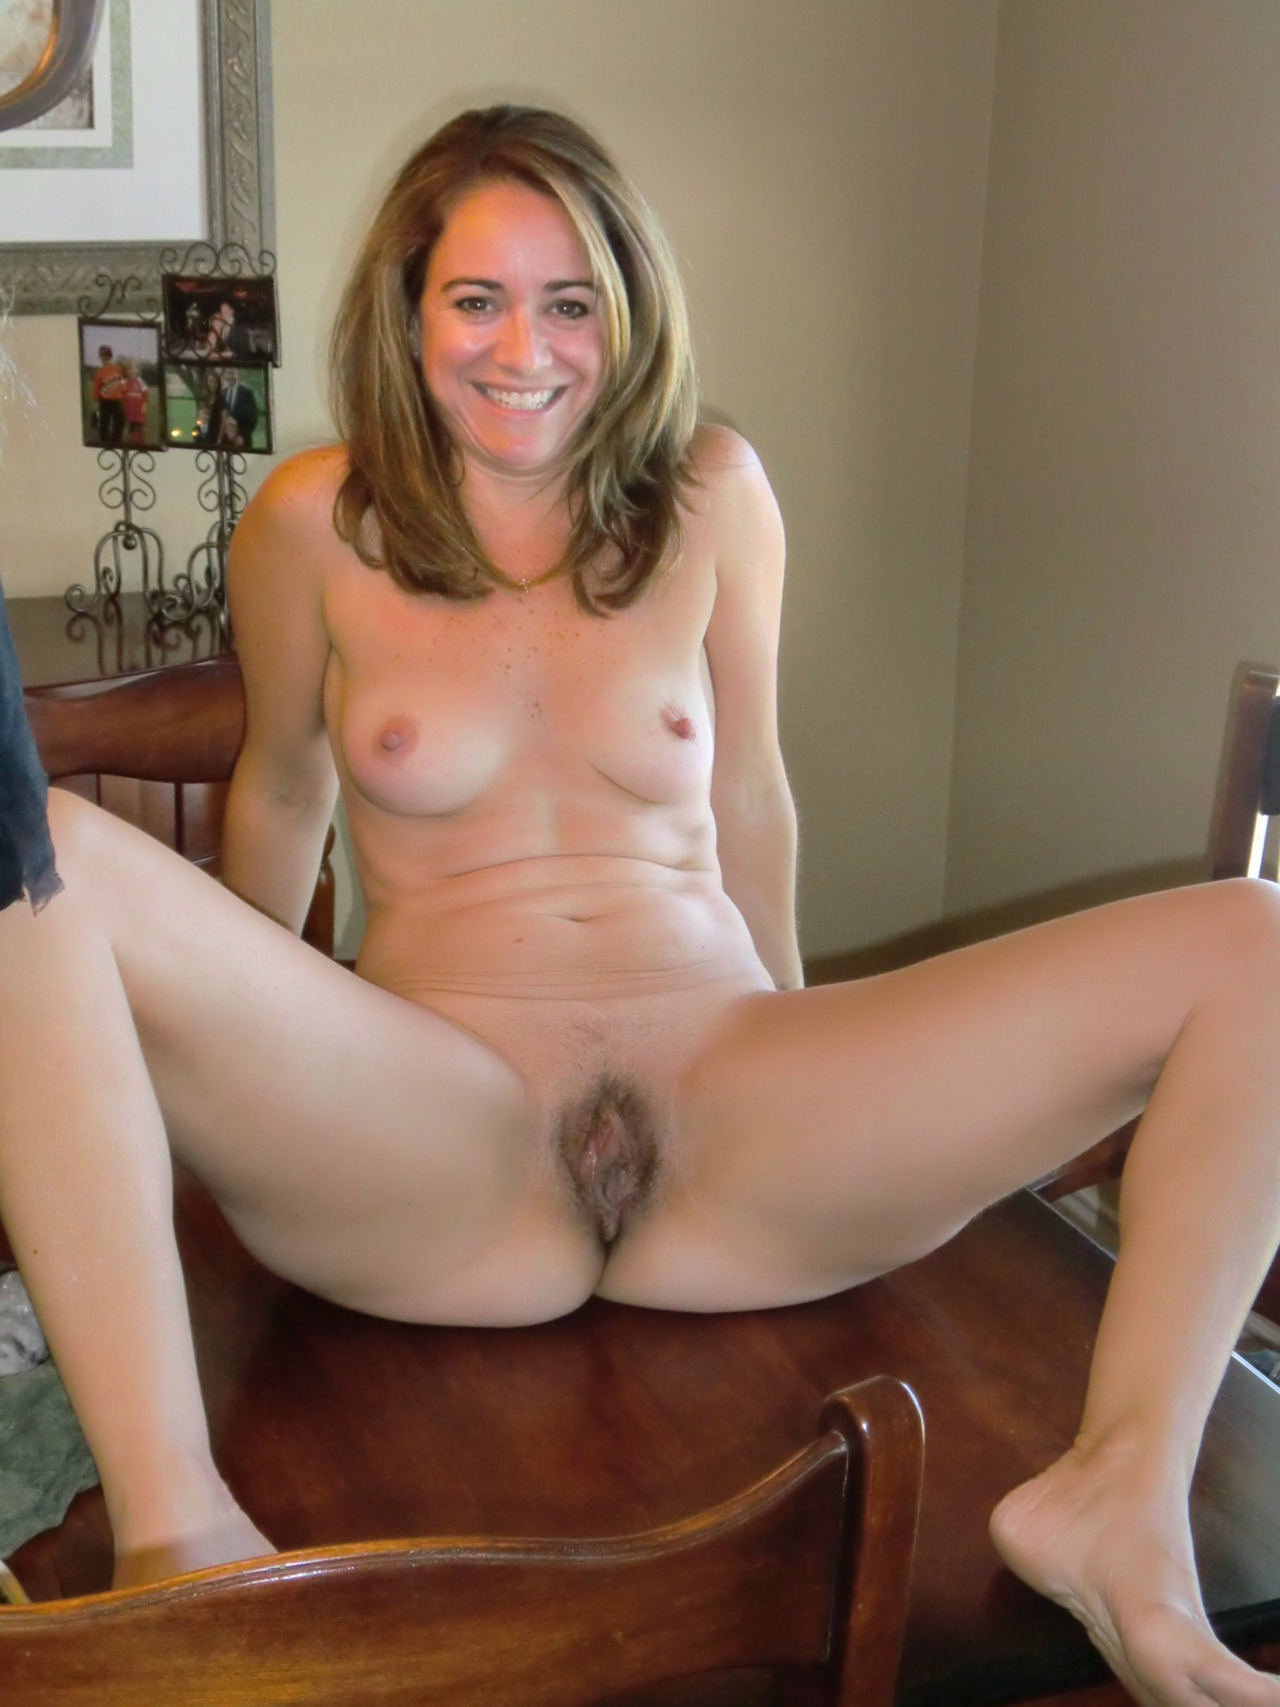 amature nude slut - top porn photos